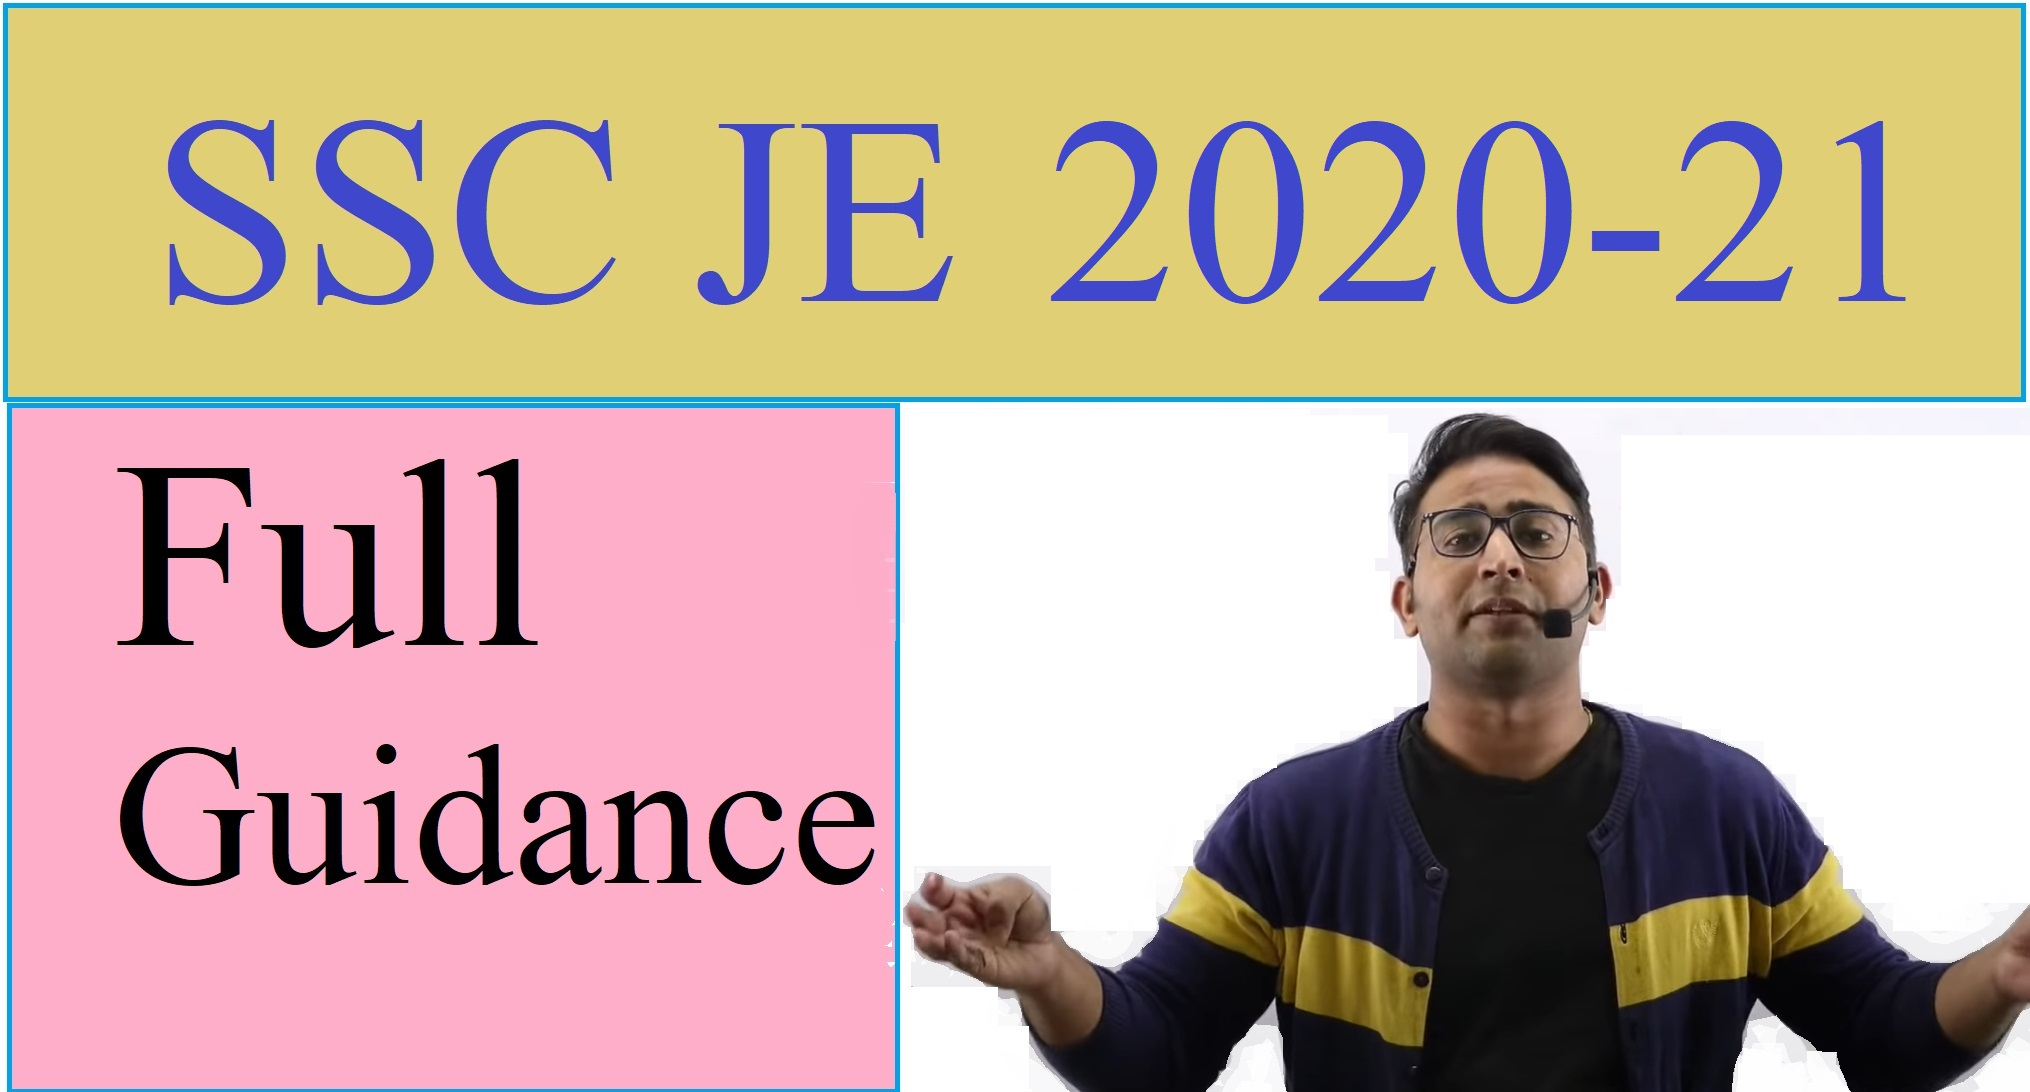 Introductory Session for SSC JE 2020-21